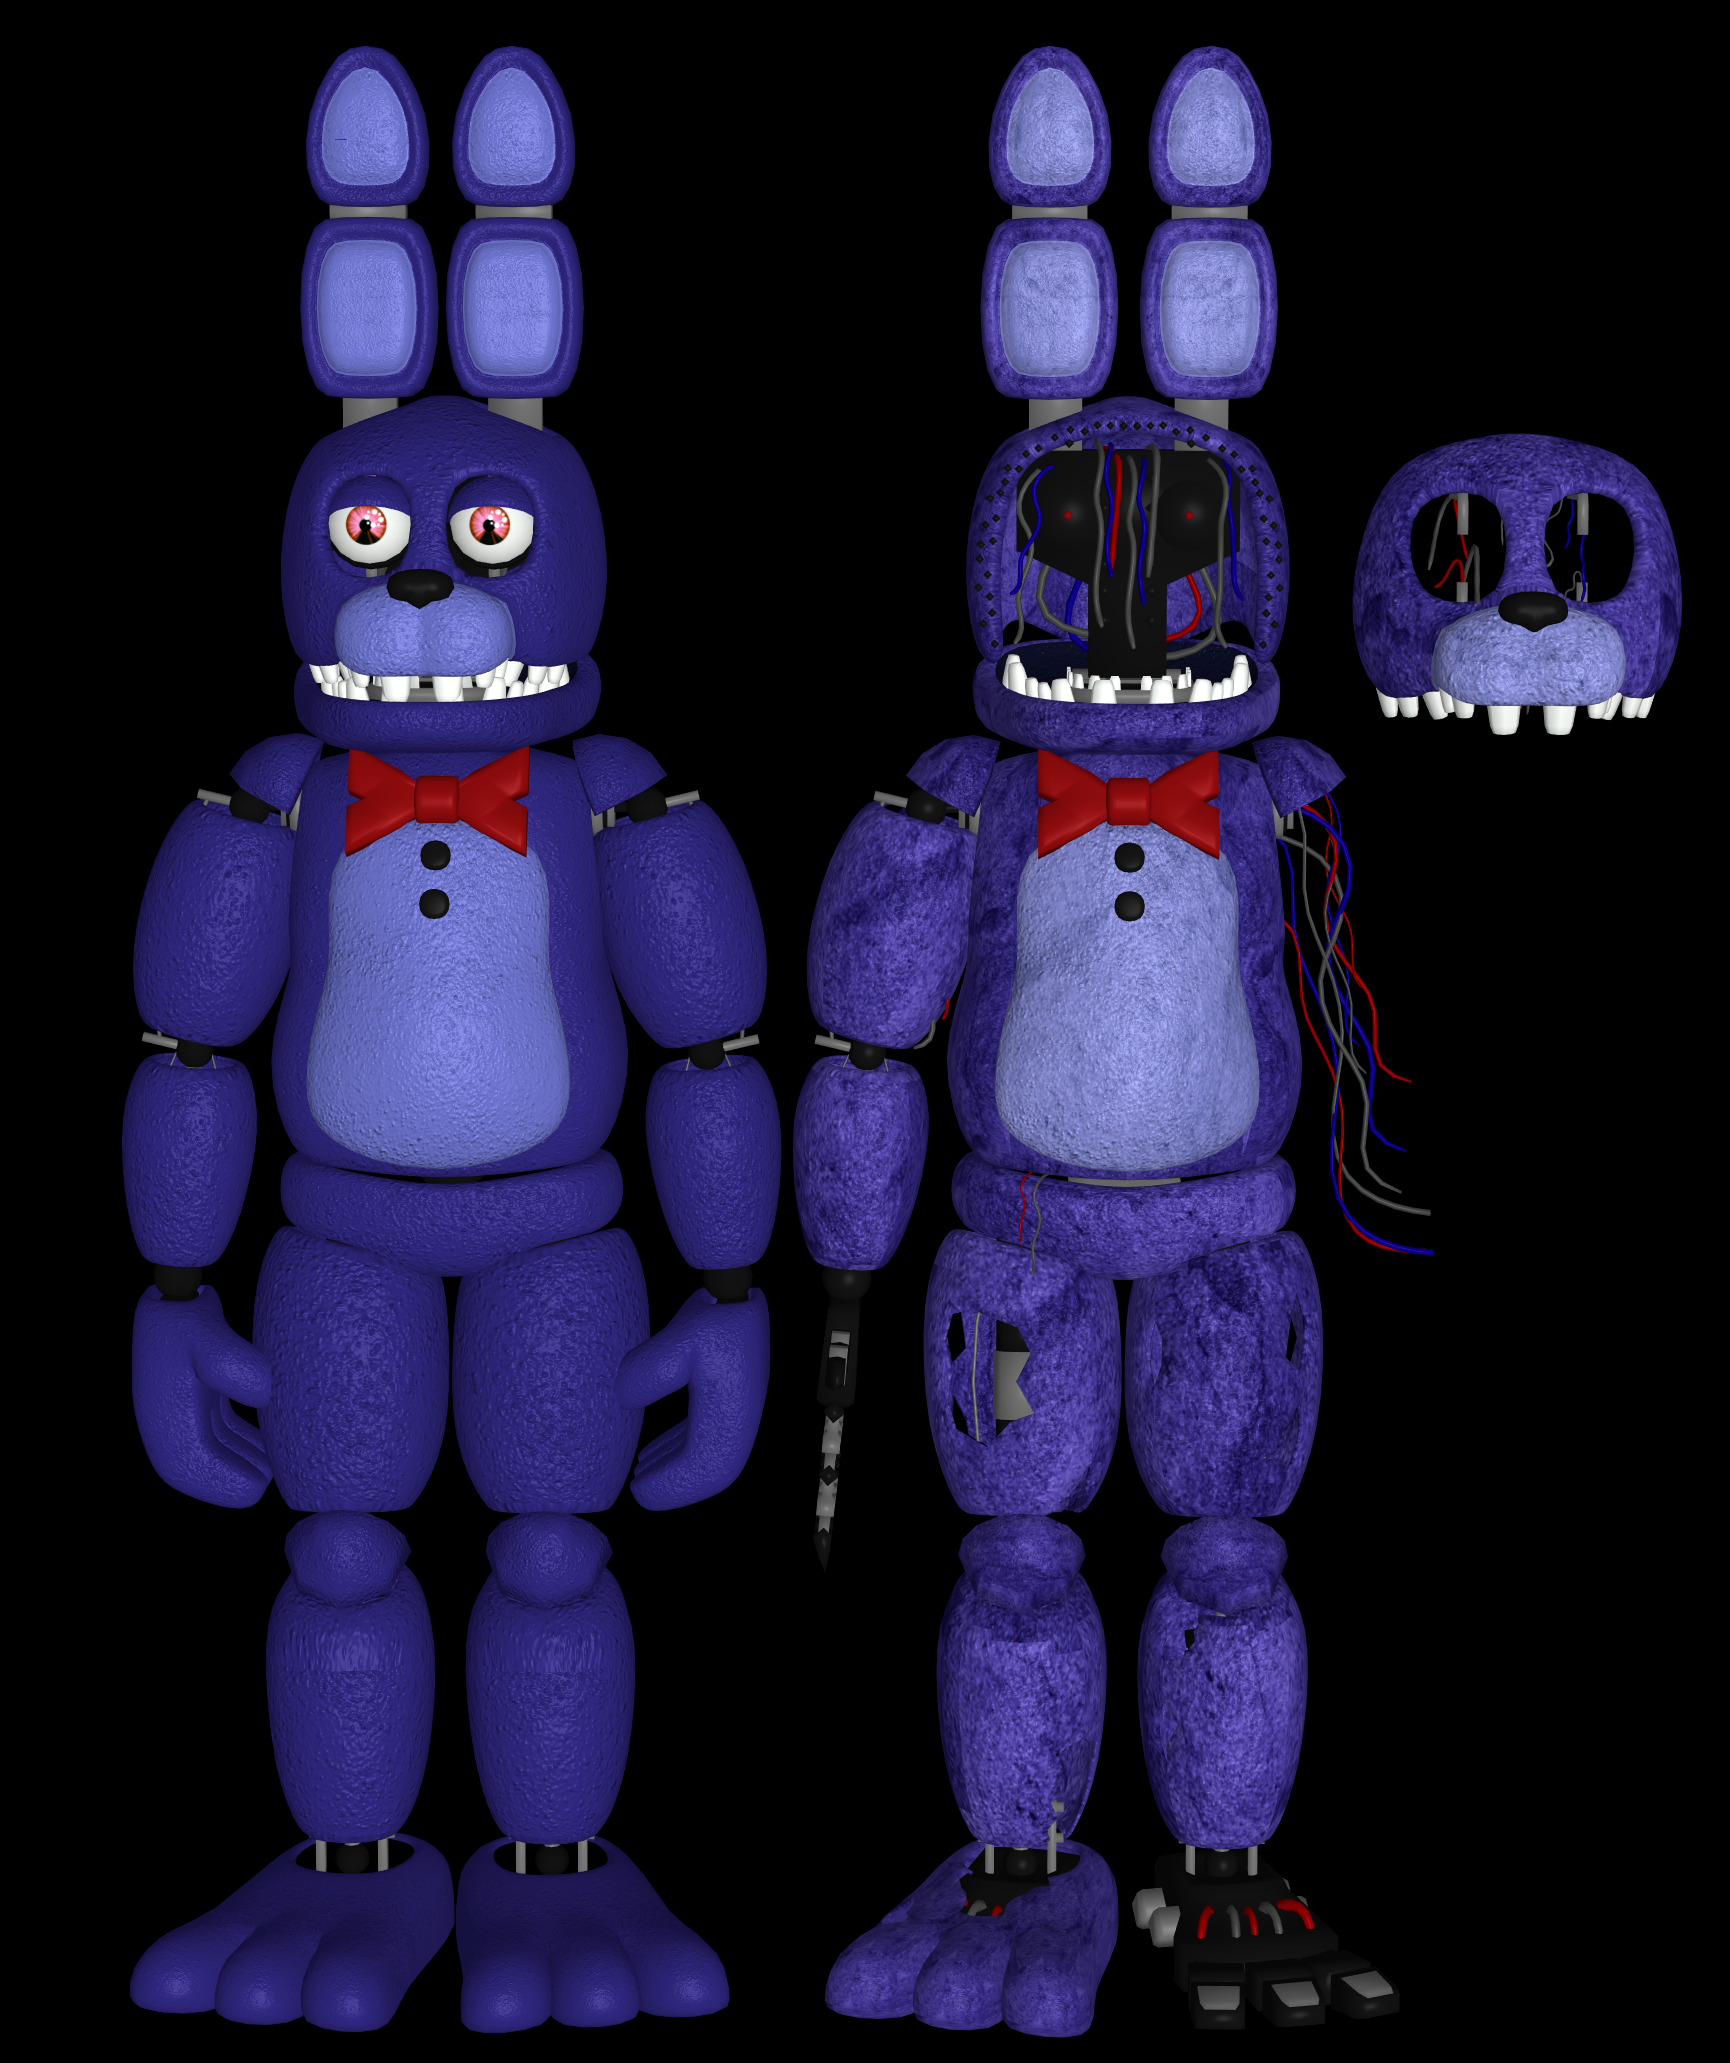 Fnaf 2 Bonnie Pack By RealMoonlight On DeviantArt